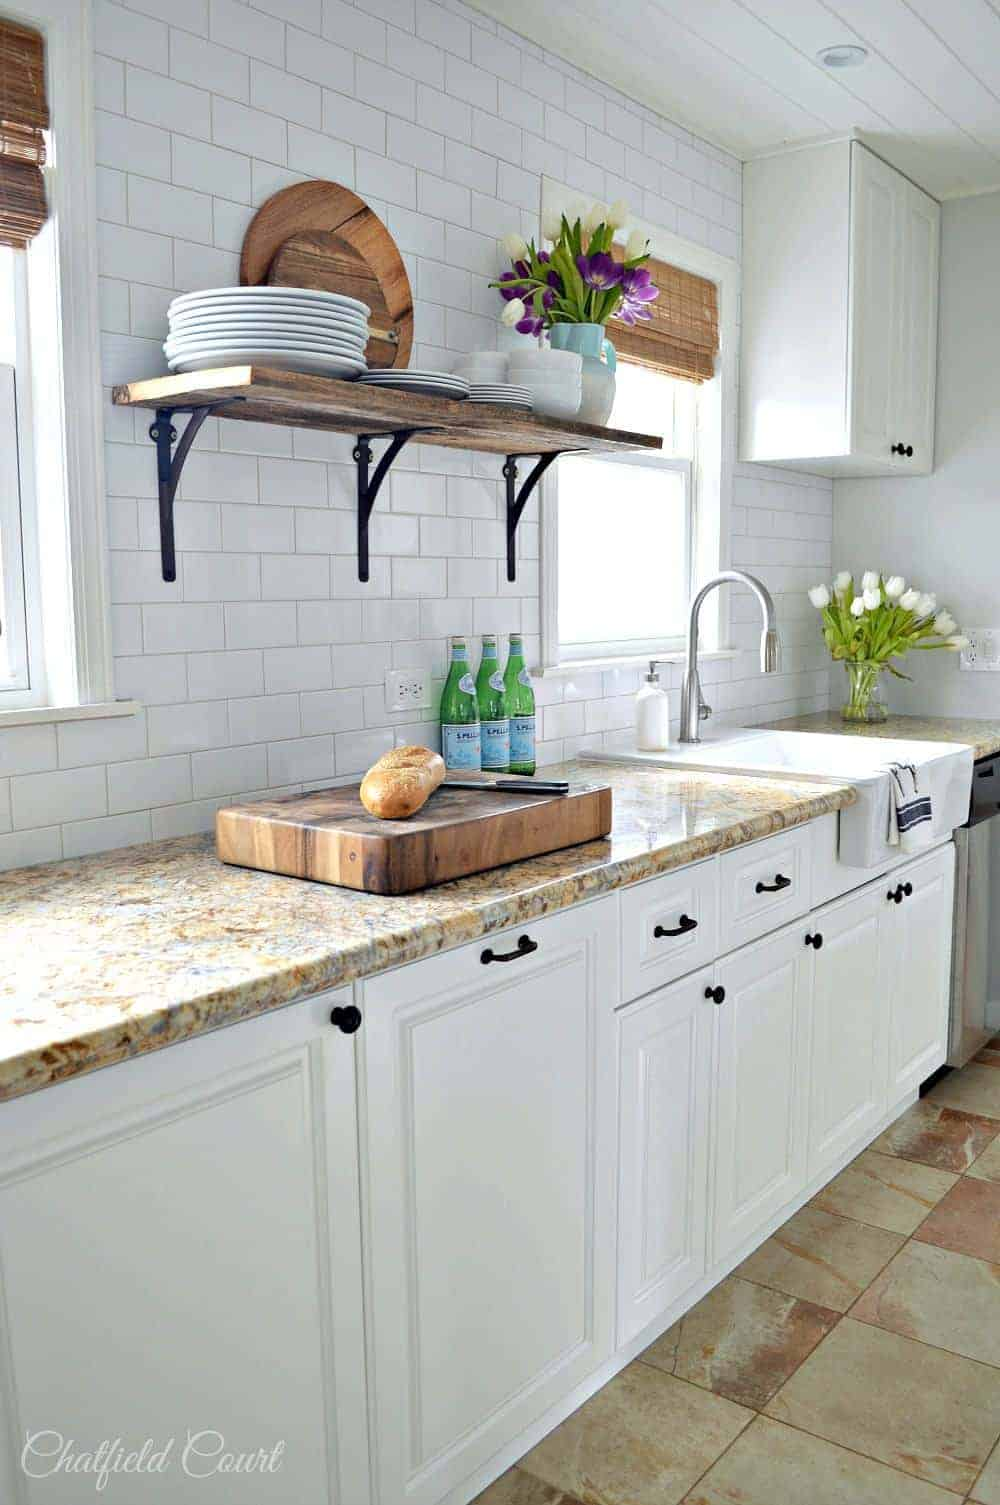 kitchen remodel reveal. Interior Design Ideas. Home Design Ideas